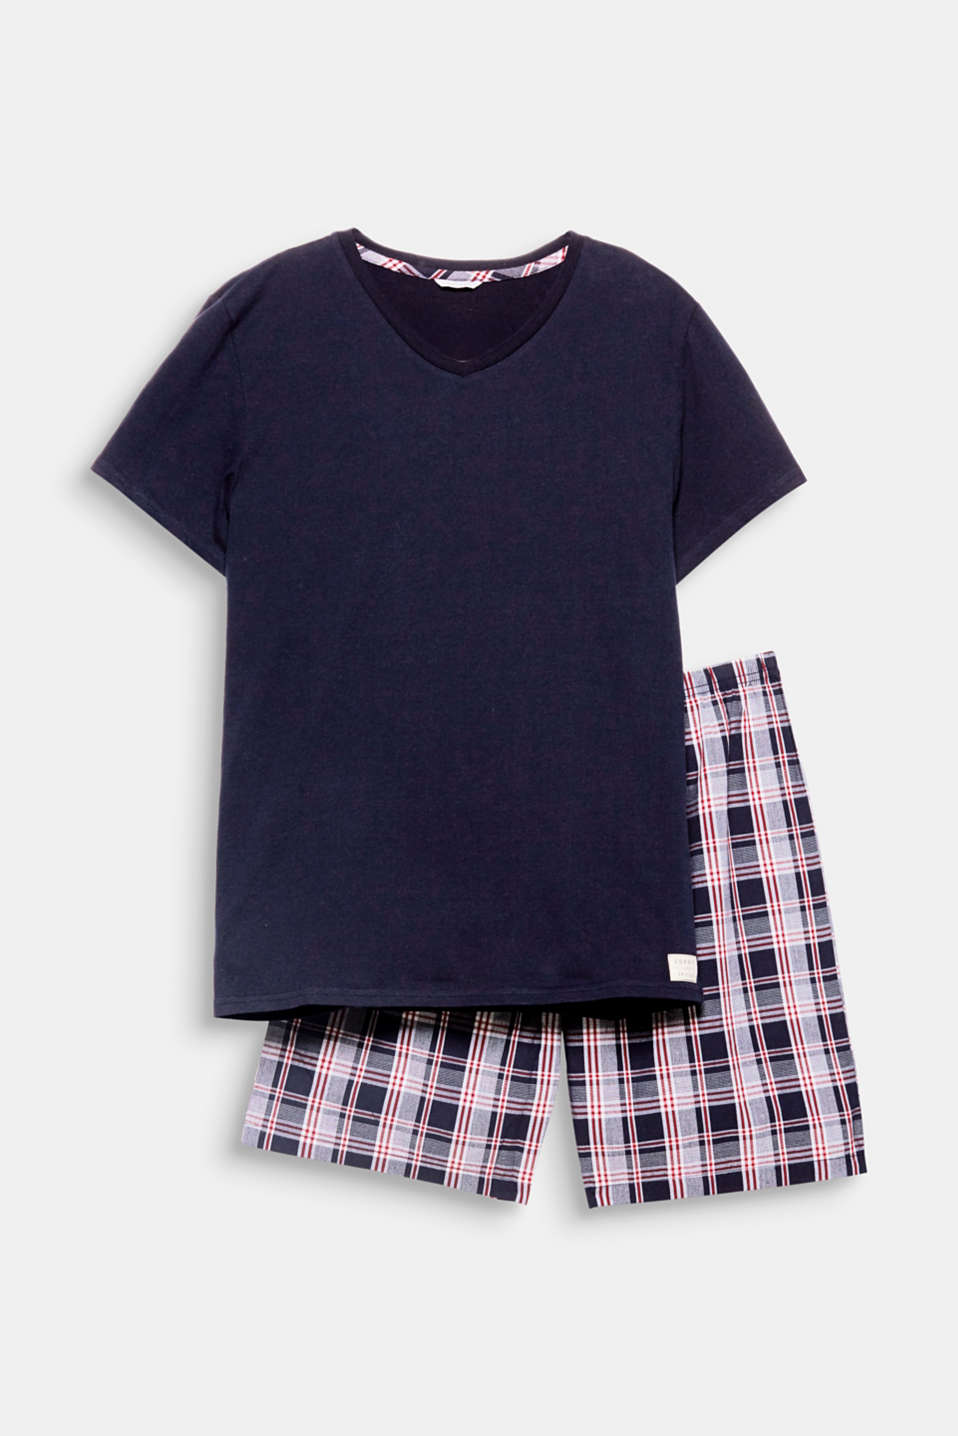 Put them on and feel good – it's simple with these summery pyjamas, which feature a plain-coloured V-neck T-shirt and check woven check Bermudas!